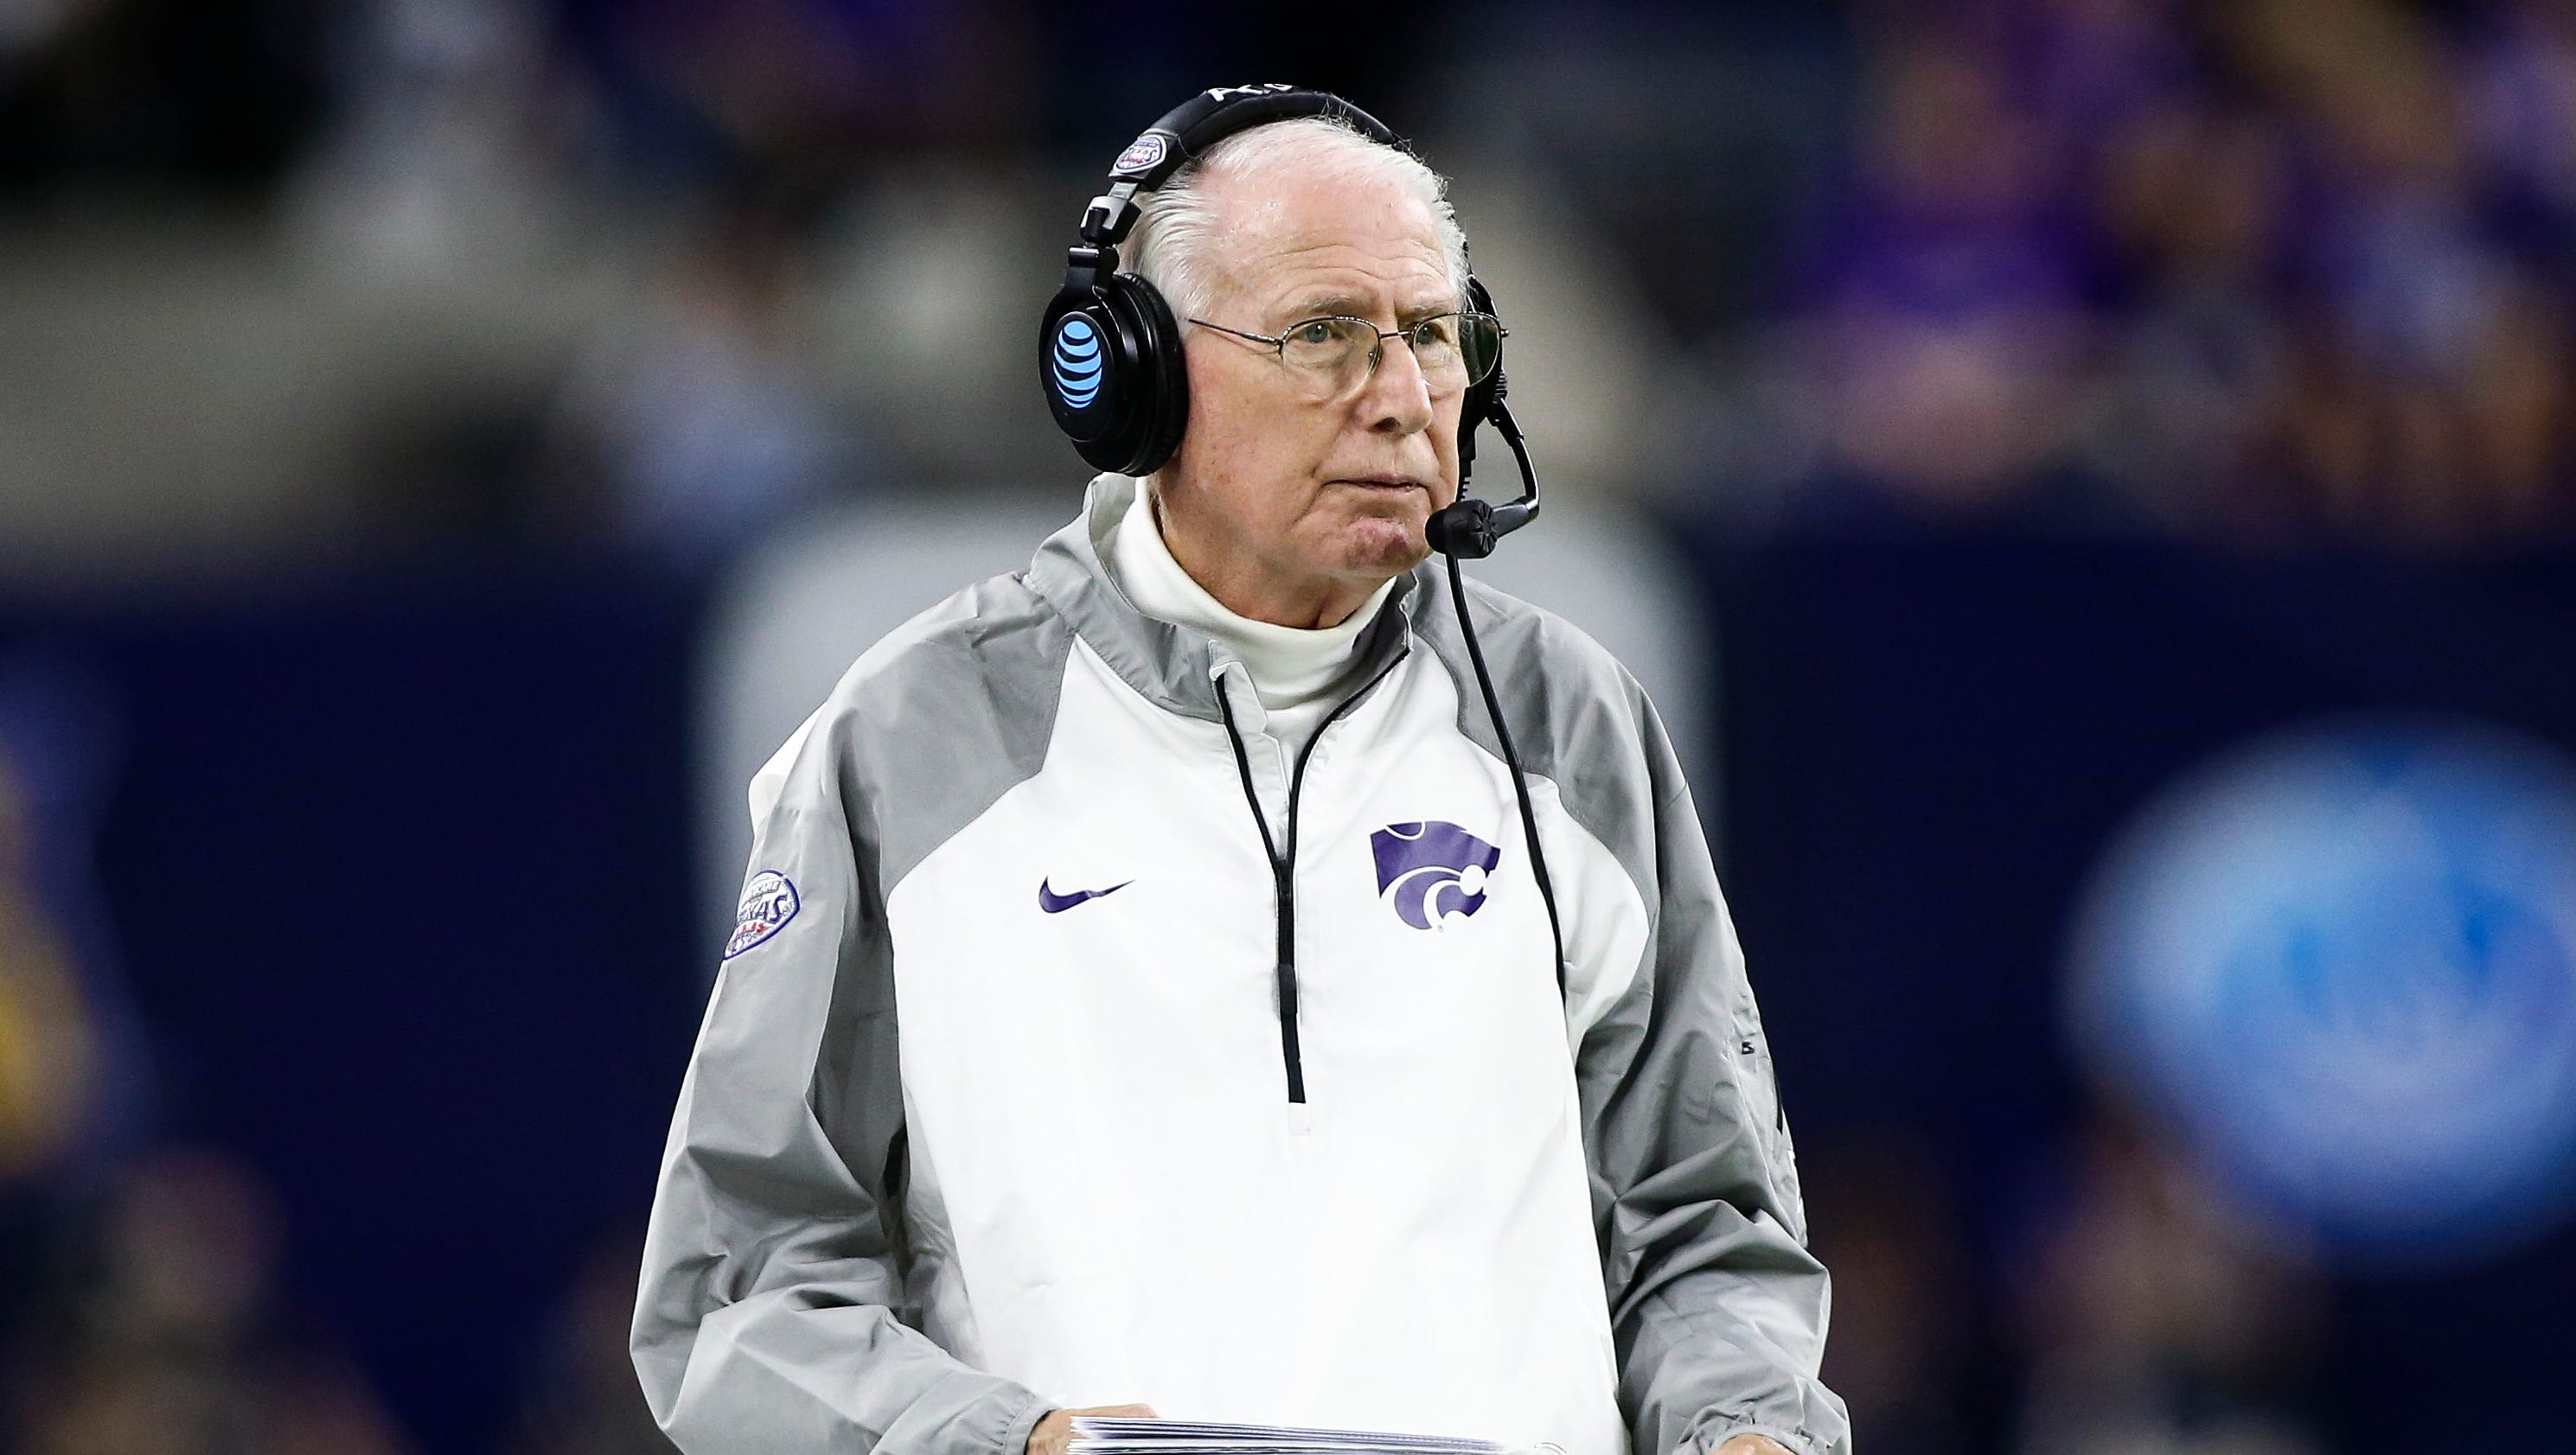 Kansas State Coach Bill Snyder Diagnosed With Throat Cancer